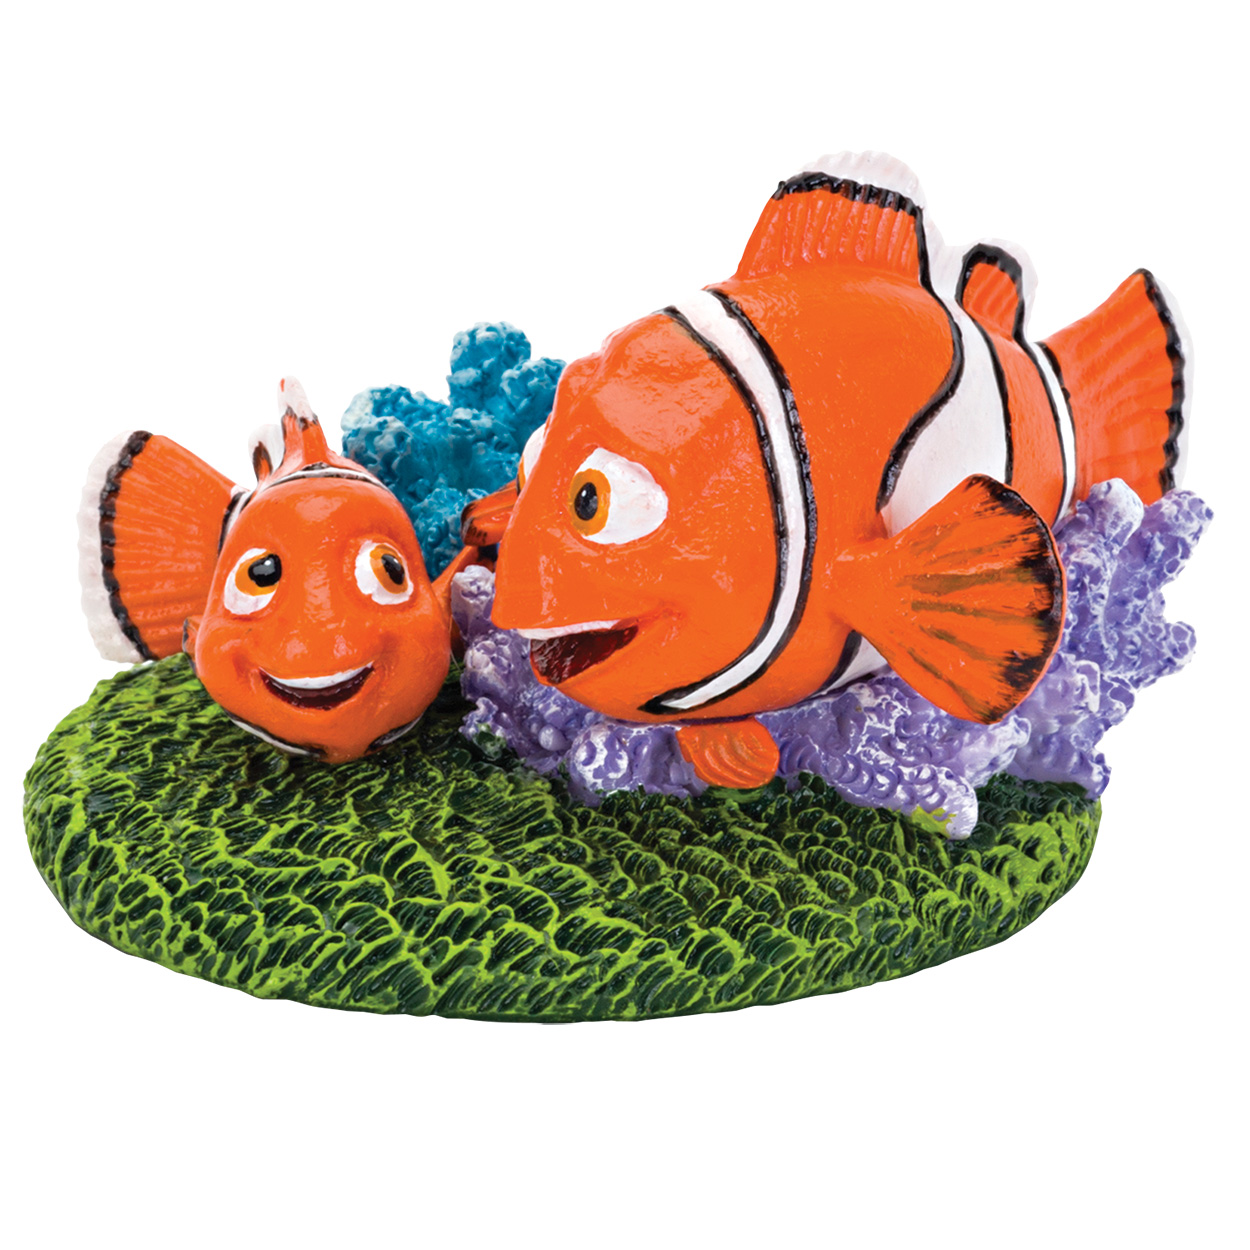 Penn Plax Finding Dory Nemo and Marlin with Coral - Medium